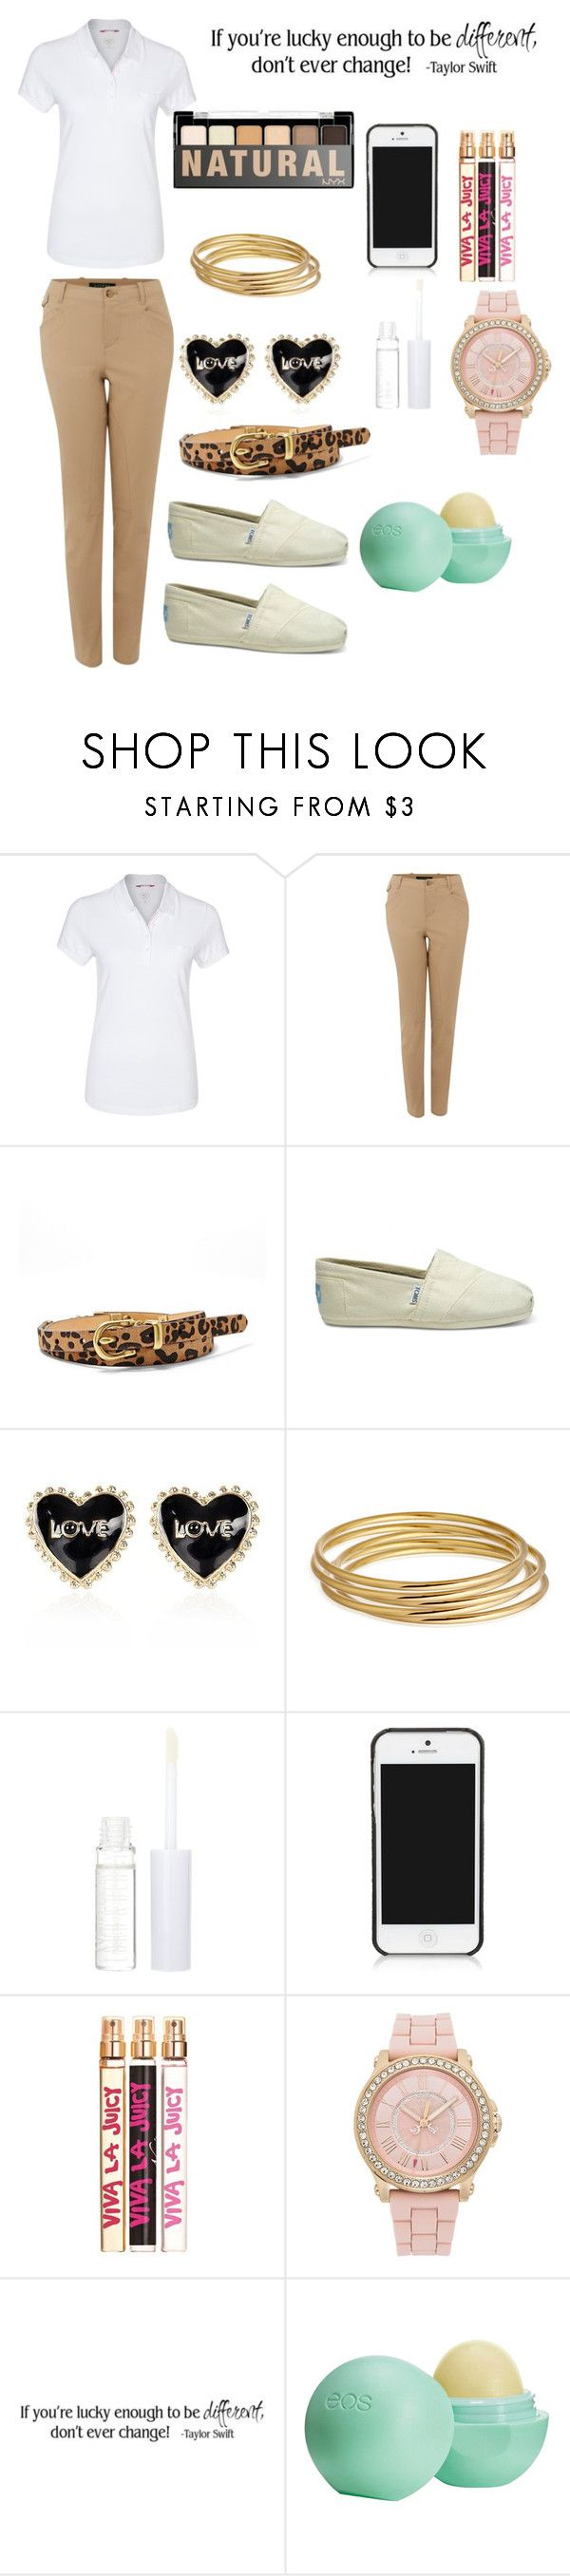 """""""How to Spice Up a School Uniform"""" by diy-queen ❤ liked on Polyvore featuring MUSTANG, Lauren Ralph Lauren, FOSSIL, TOMS, River Island, Astley Clarke, Lord & Berry, NYX, Tory Burch and Juicy Couture"""